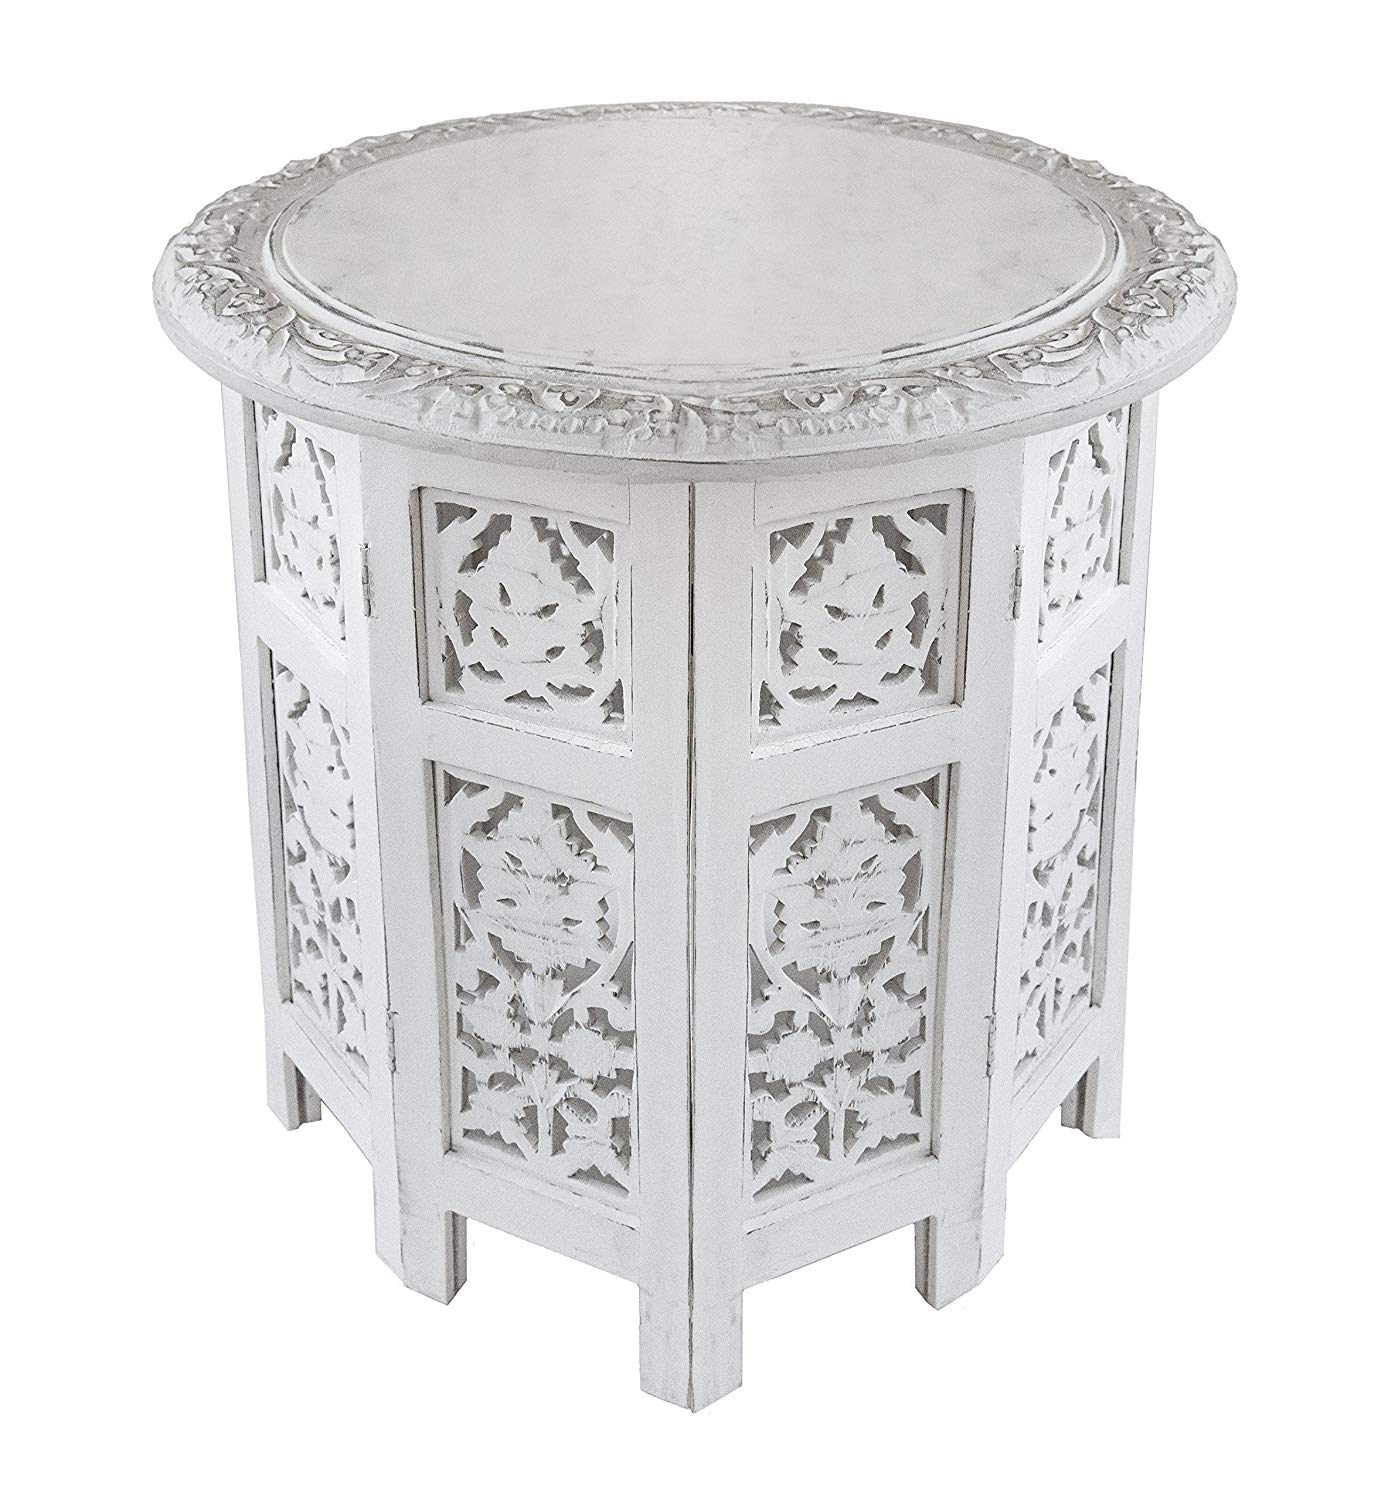 mango wood hand carved accent pedestal table antique sheesham brown handcrafted round top high intricate detail nautical bathroom vanity lights bayside door threshold trim half